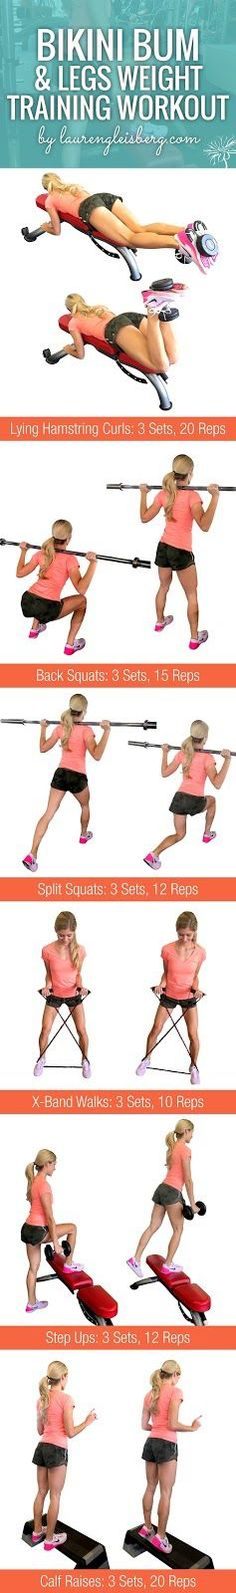 Bikini & Legs Training Workout